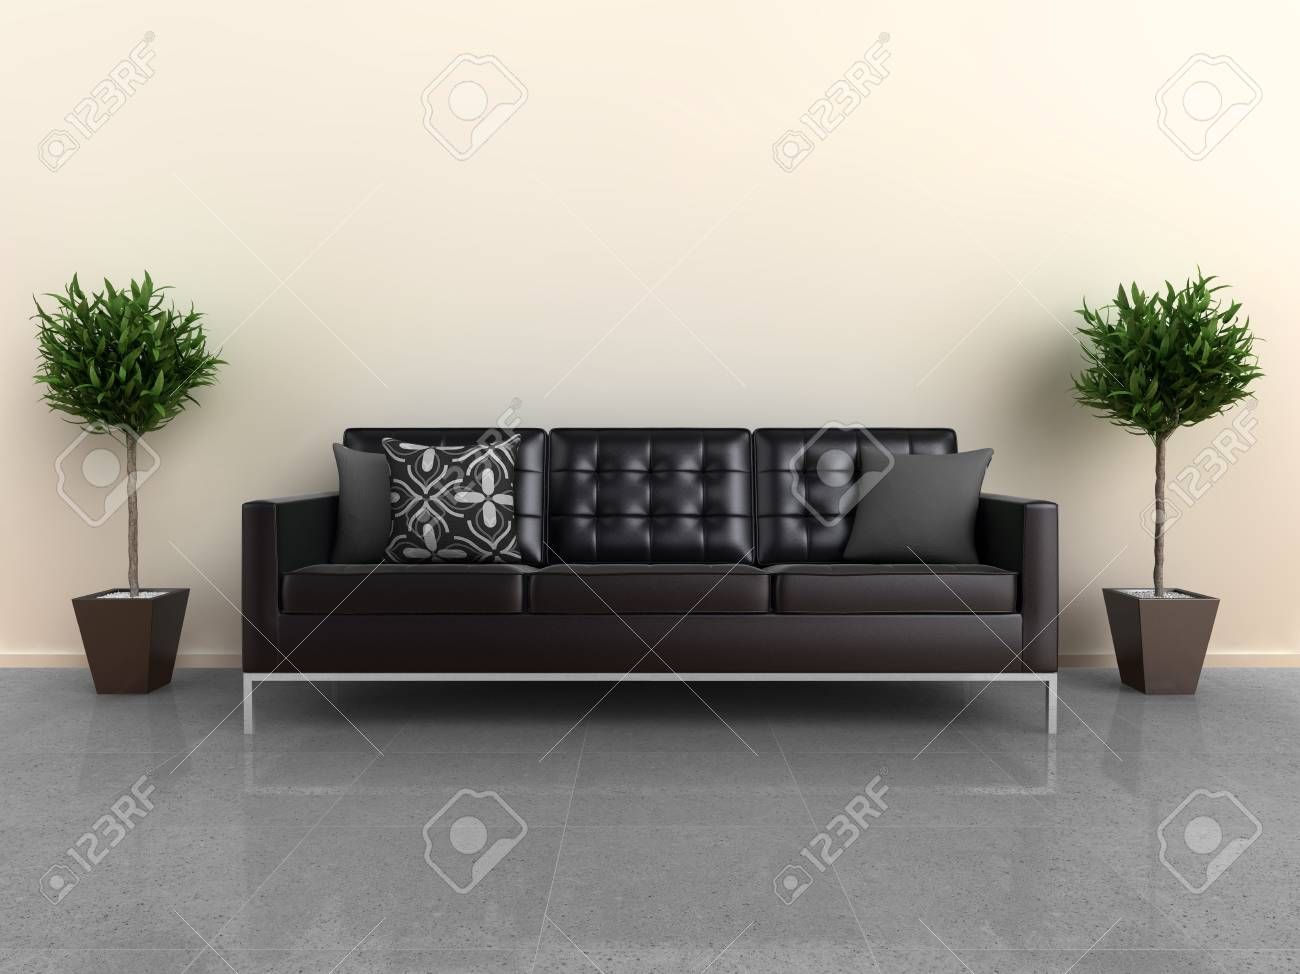 Designer Couch Illustration Of A Designer Sofa With Plants Either Side On